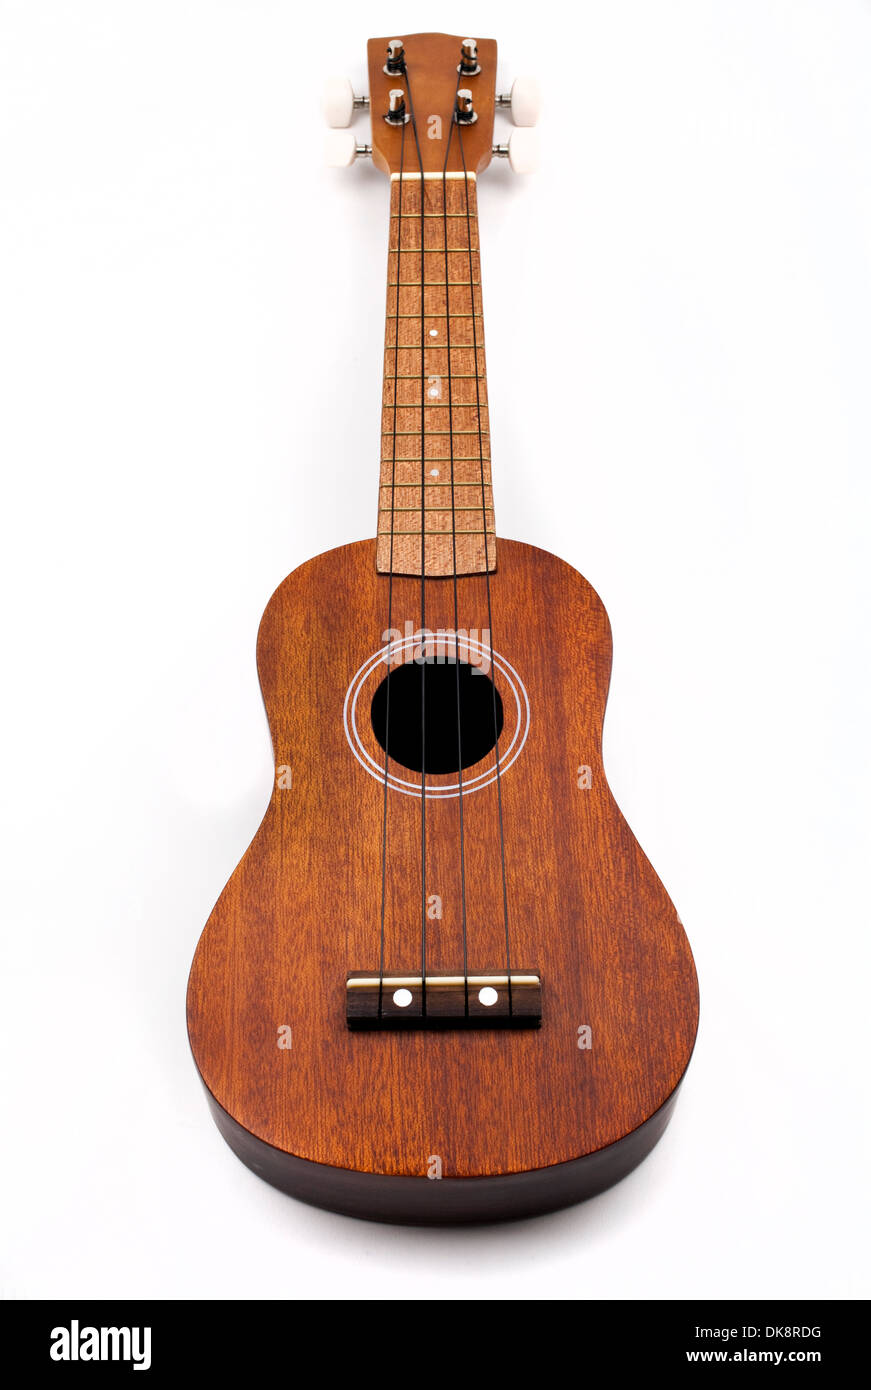 Ukulele on a white background. Stock Photo